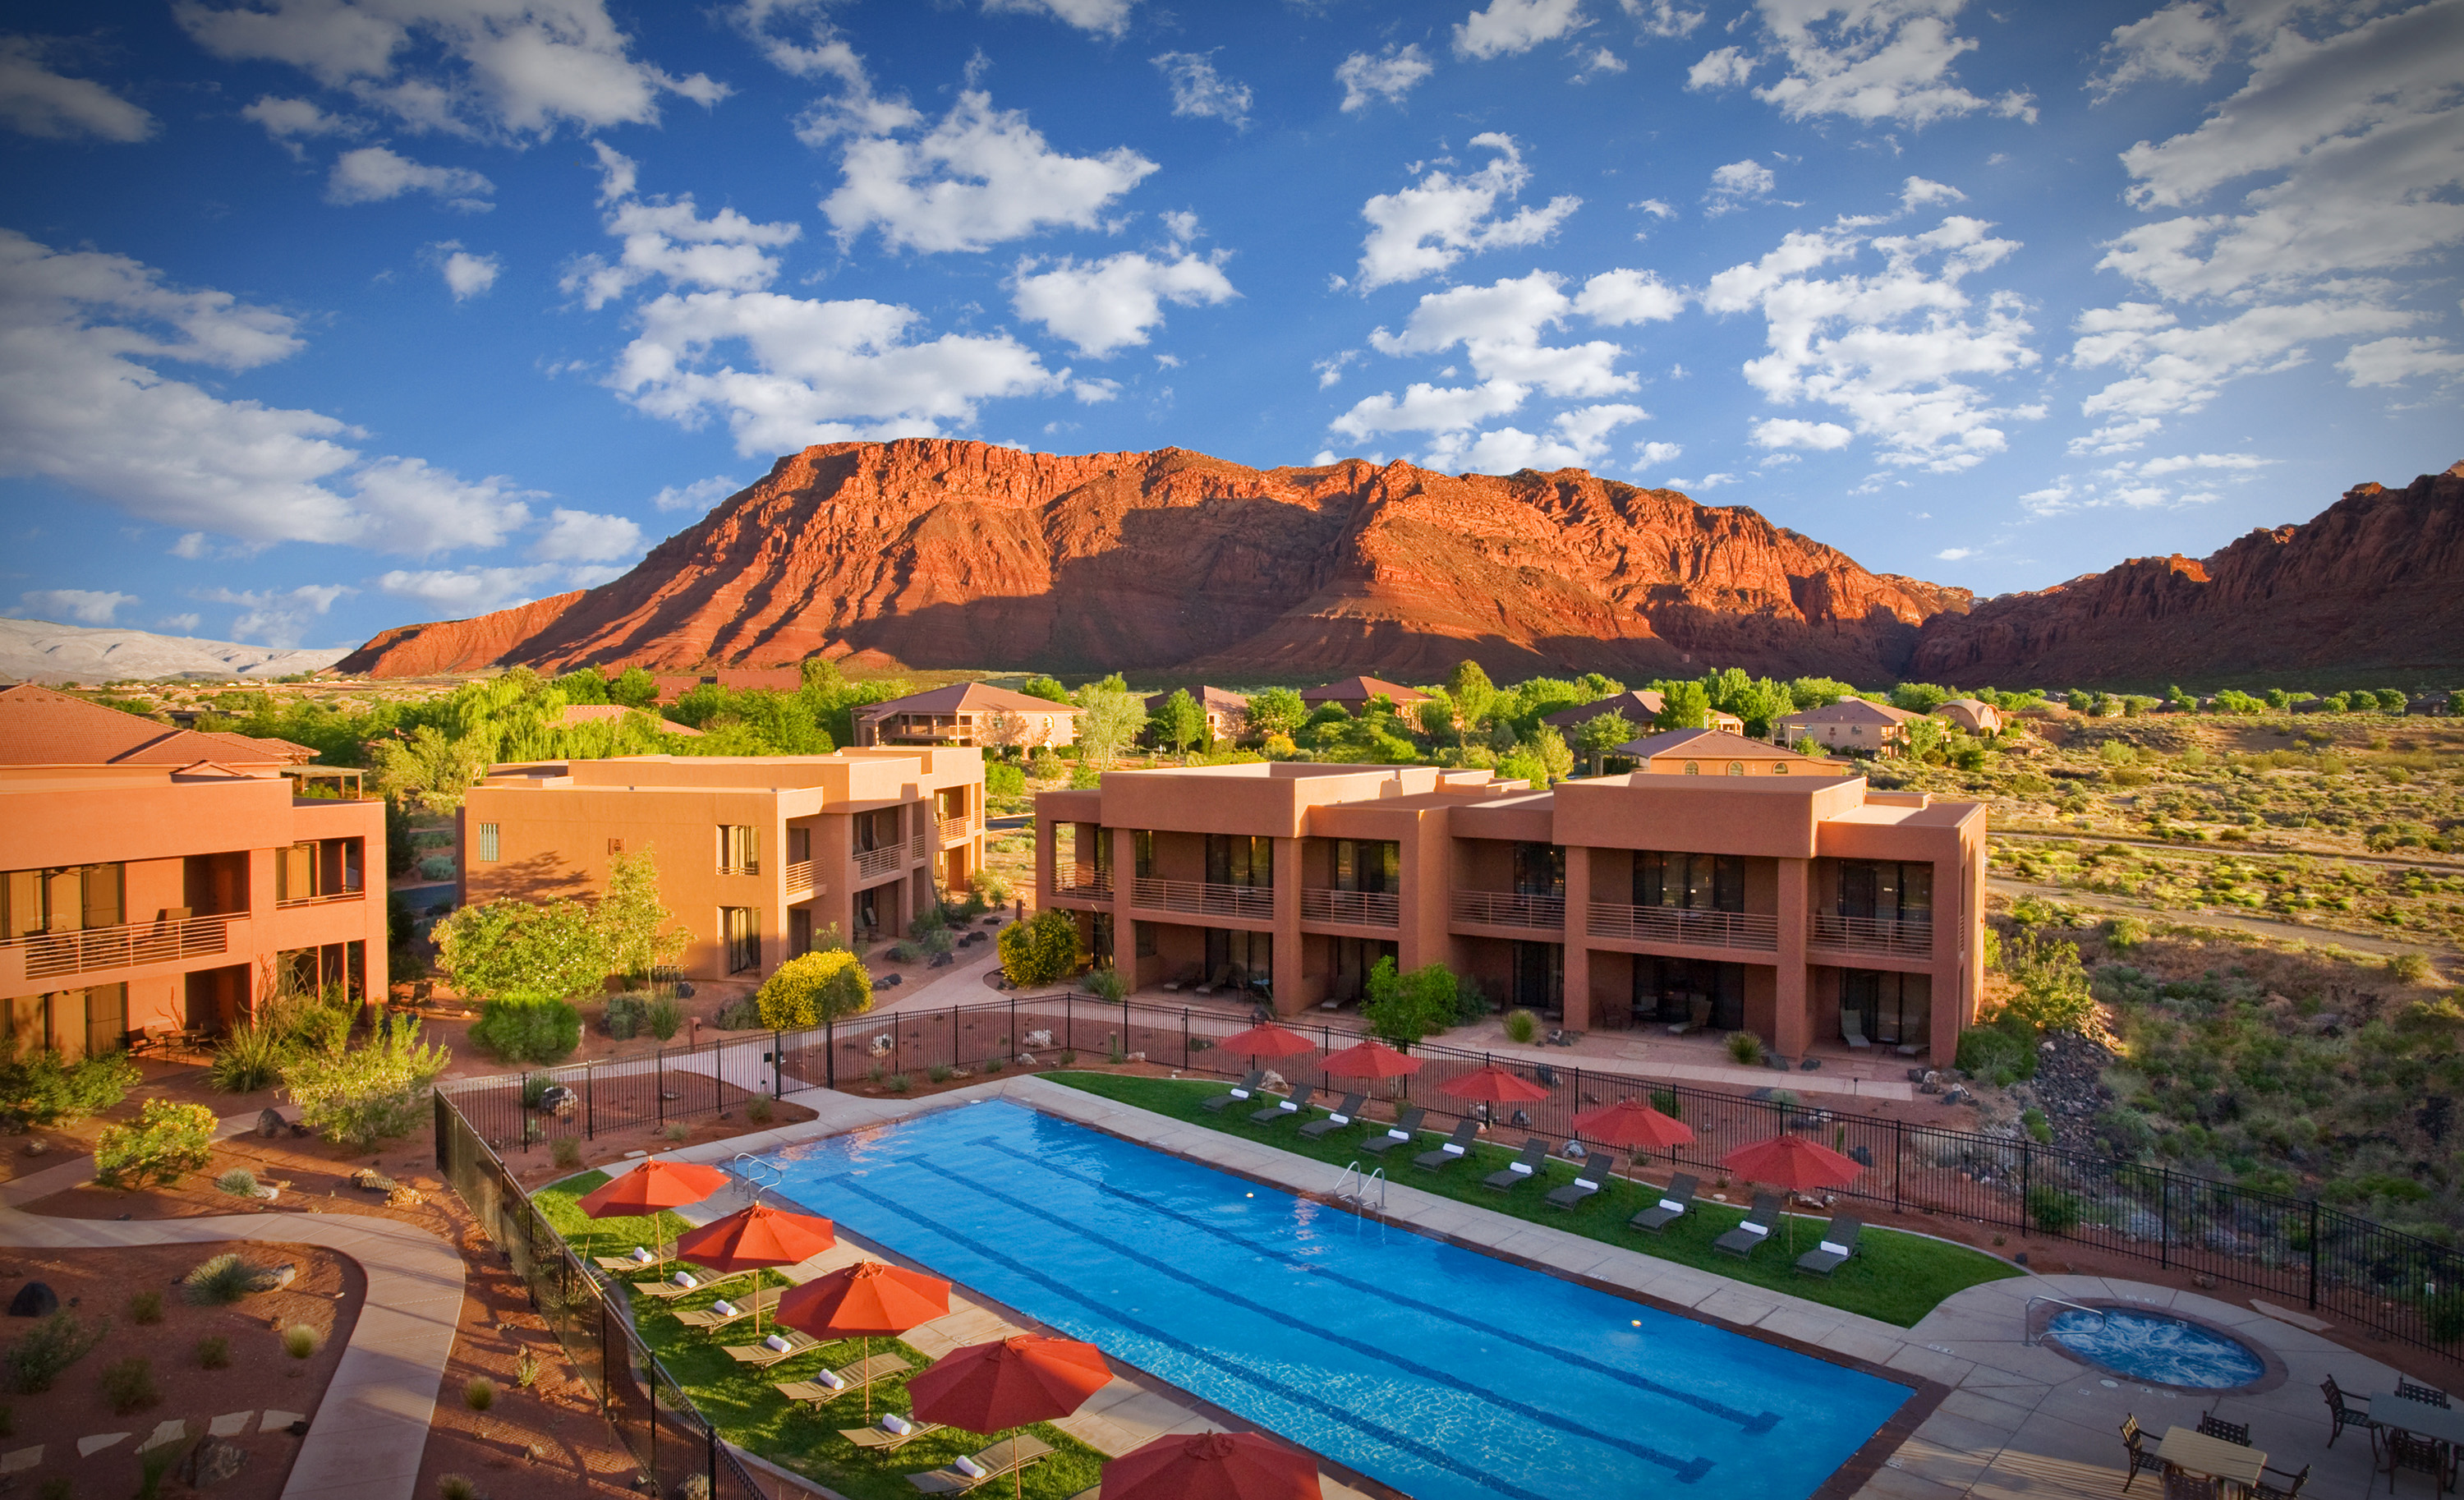 Zion Resort Spa